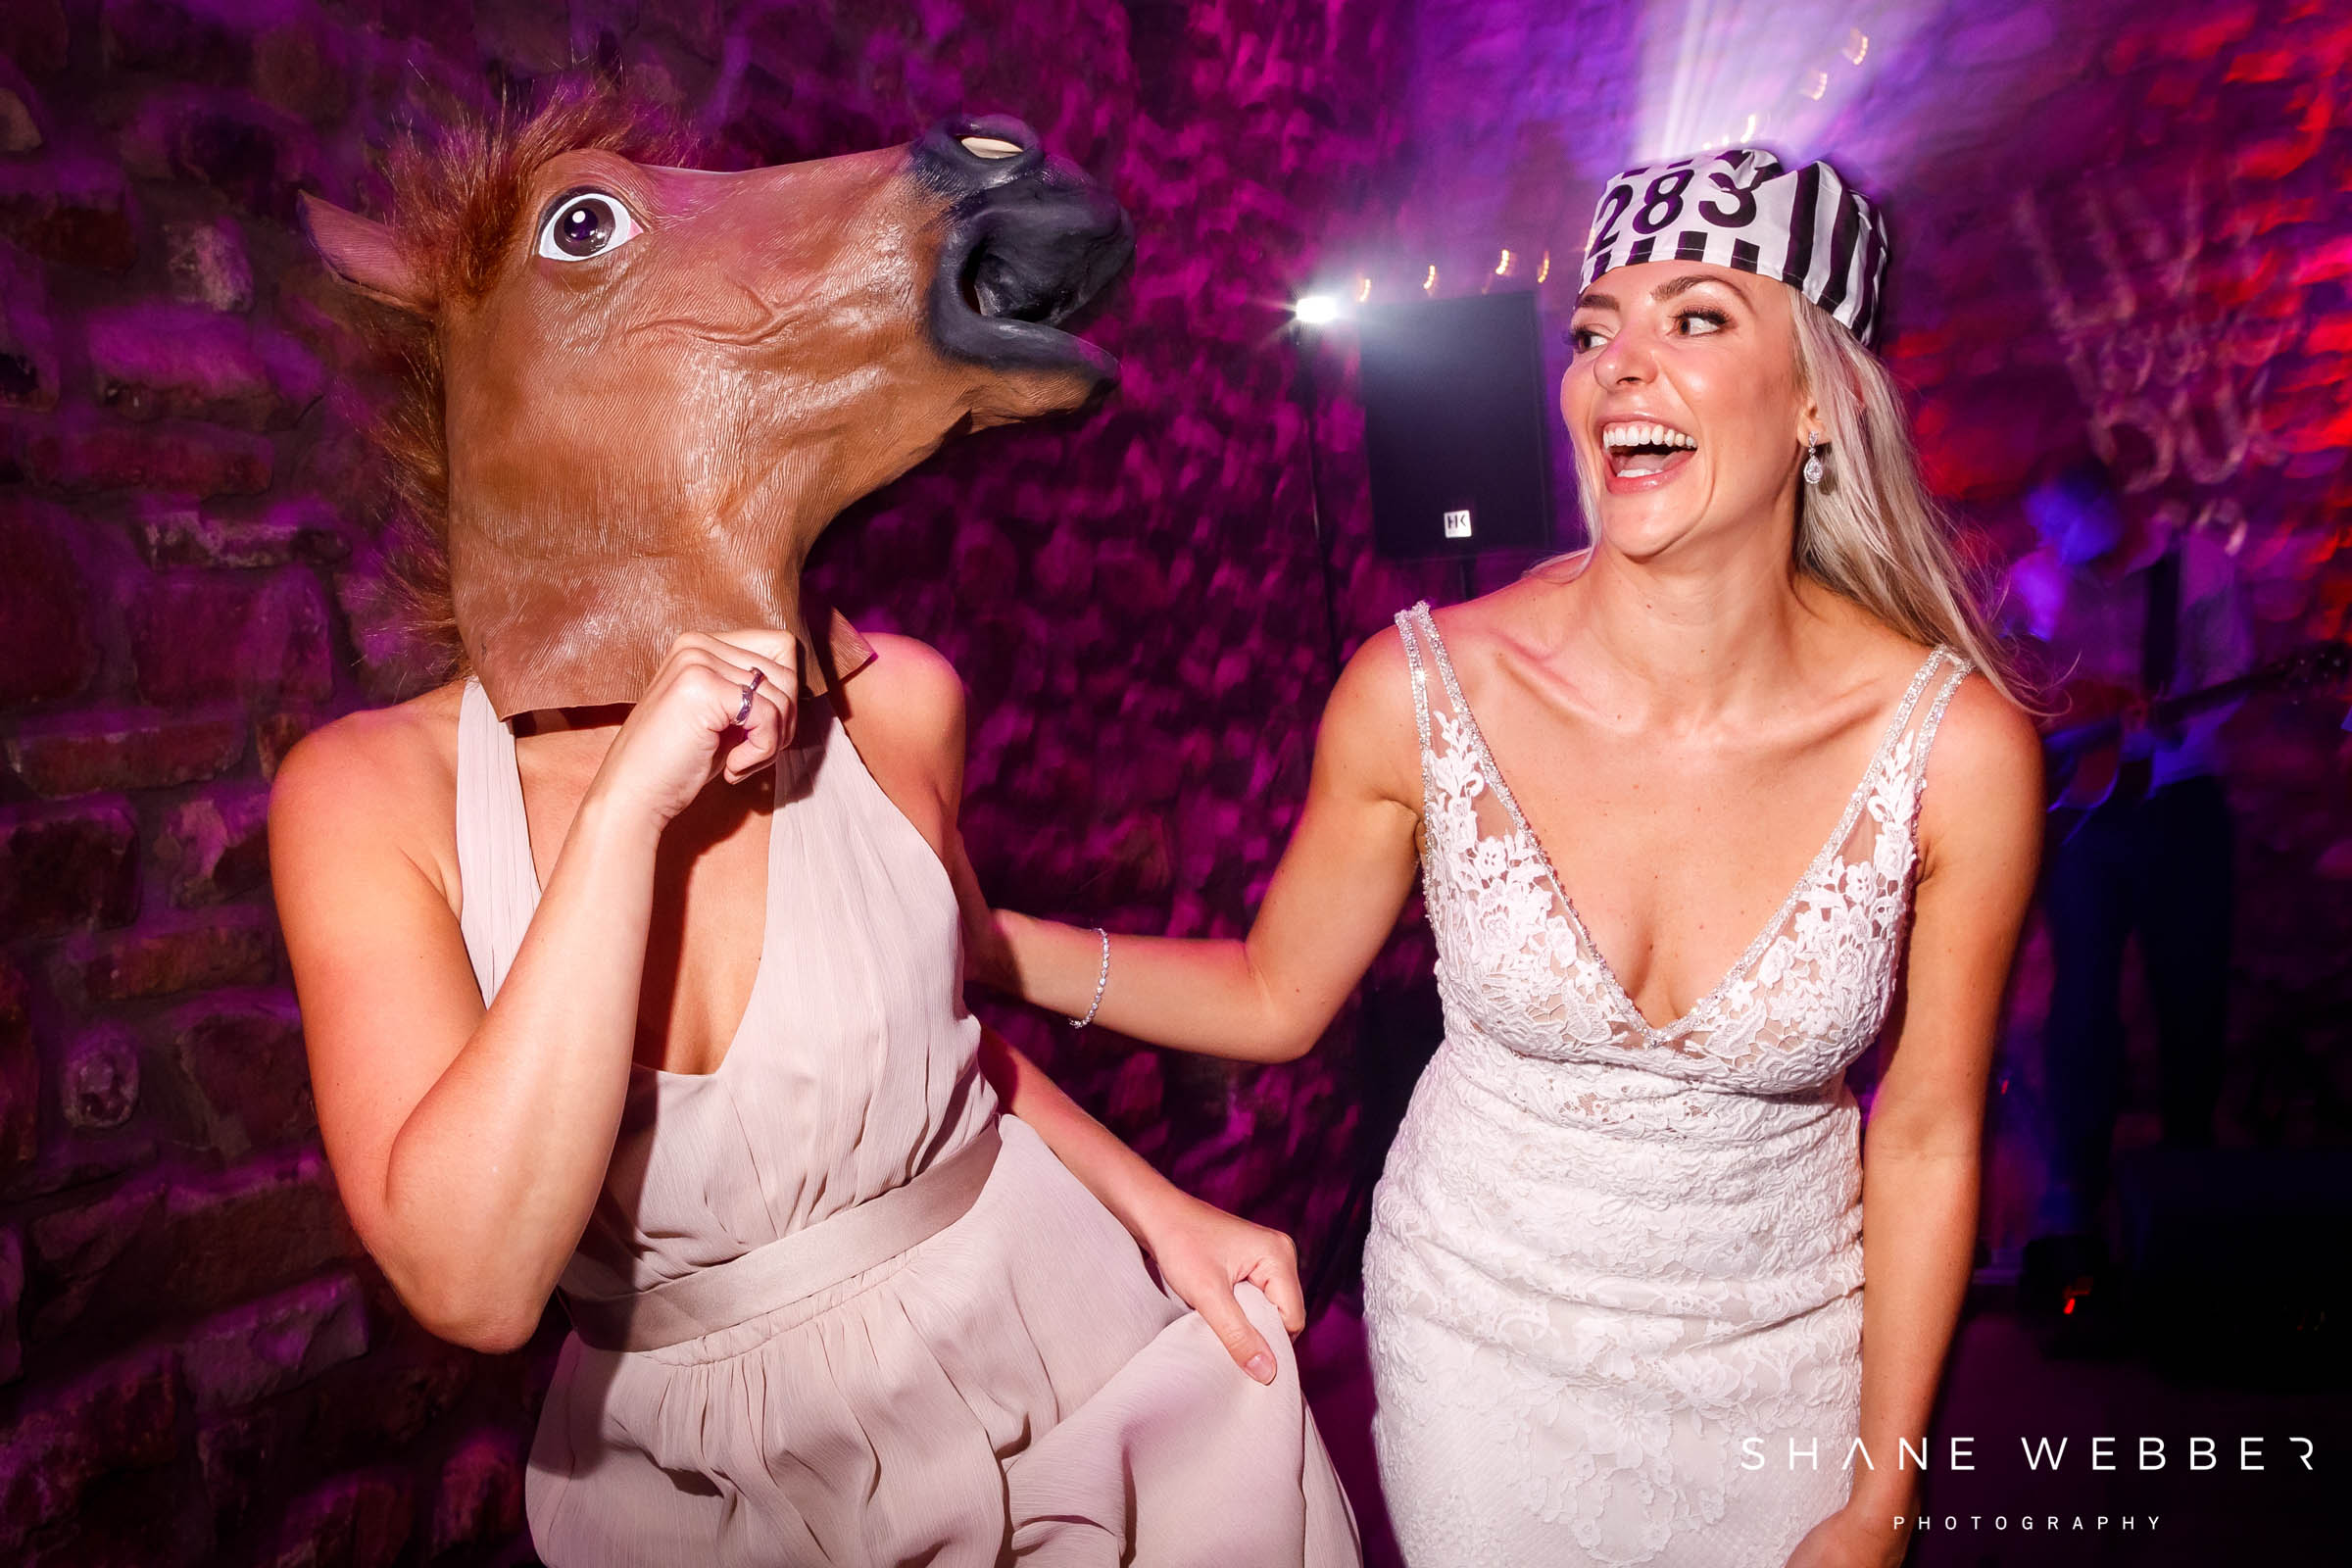 horses head photo booth prop